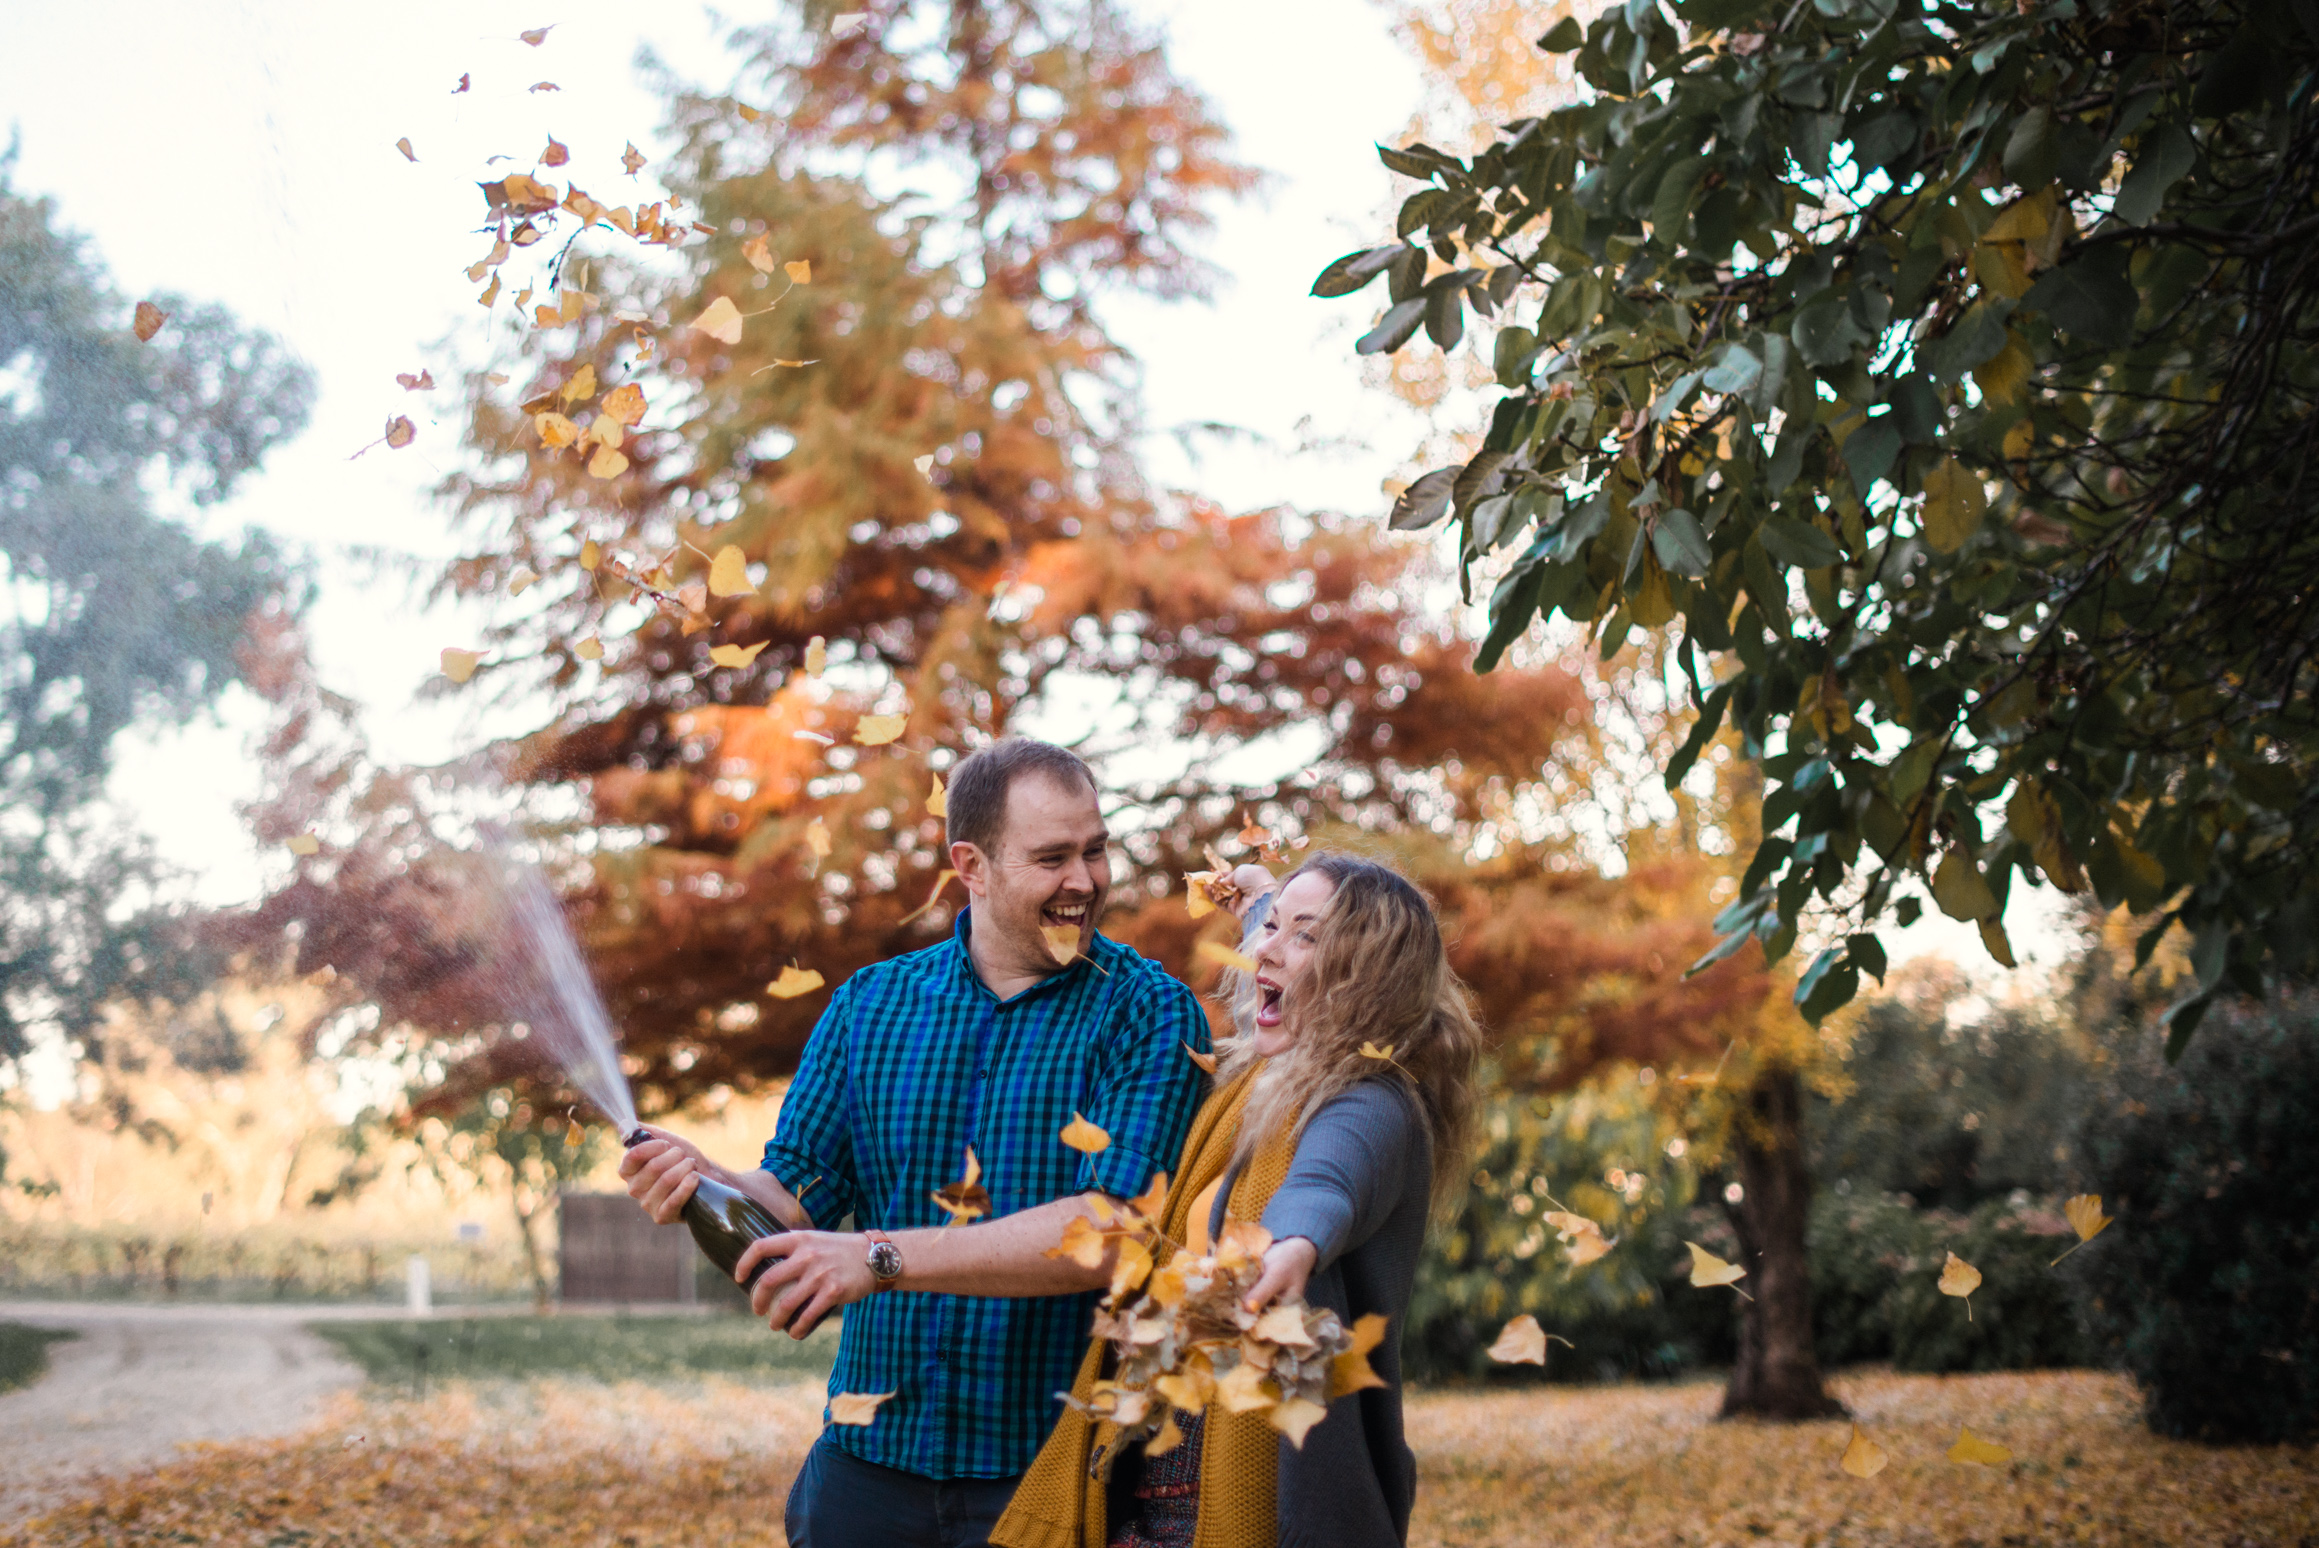 LOVELENSCAPES PHOTOGRAPHY • VISUAL POETRY • JACQUI & CHRIS • TAHBILK WINERY ENGAGEMENT • AUTUMN ENGAGEMENT • 17.jpg